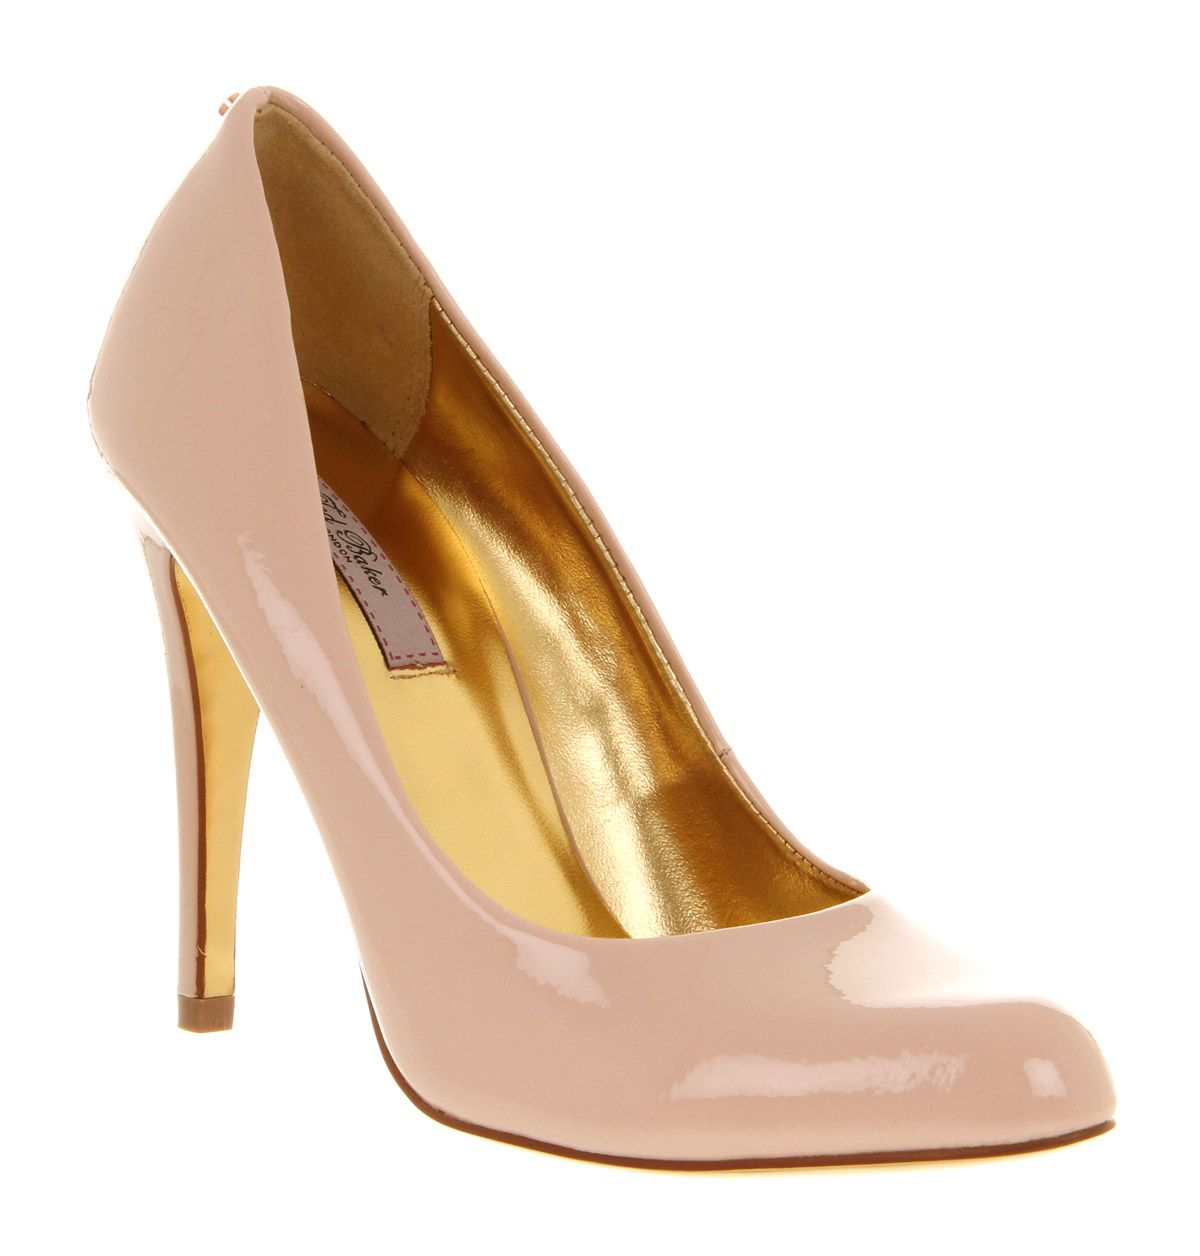 Ted Baker JAXINE 2 COURT SHOE NUDE PATENT LEATHER Shoes - Womens ...